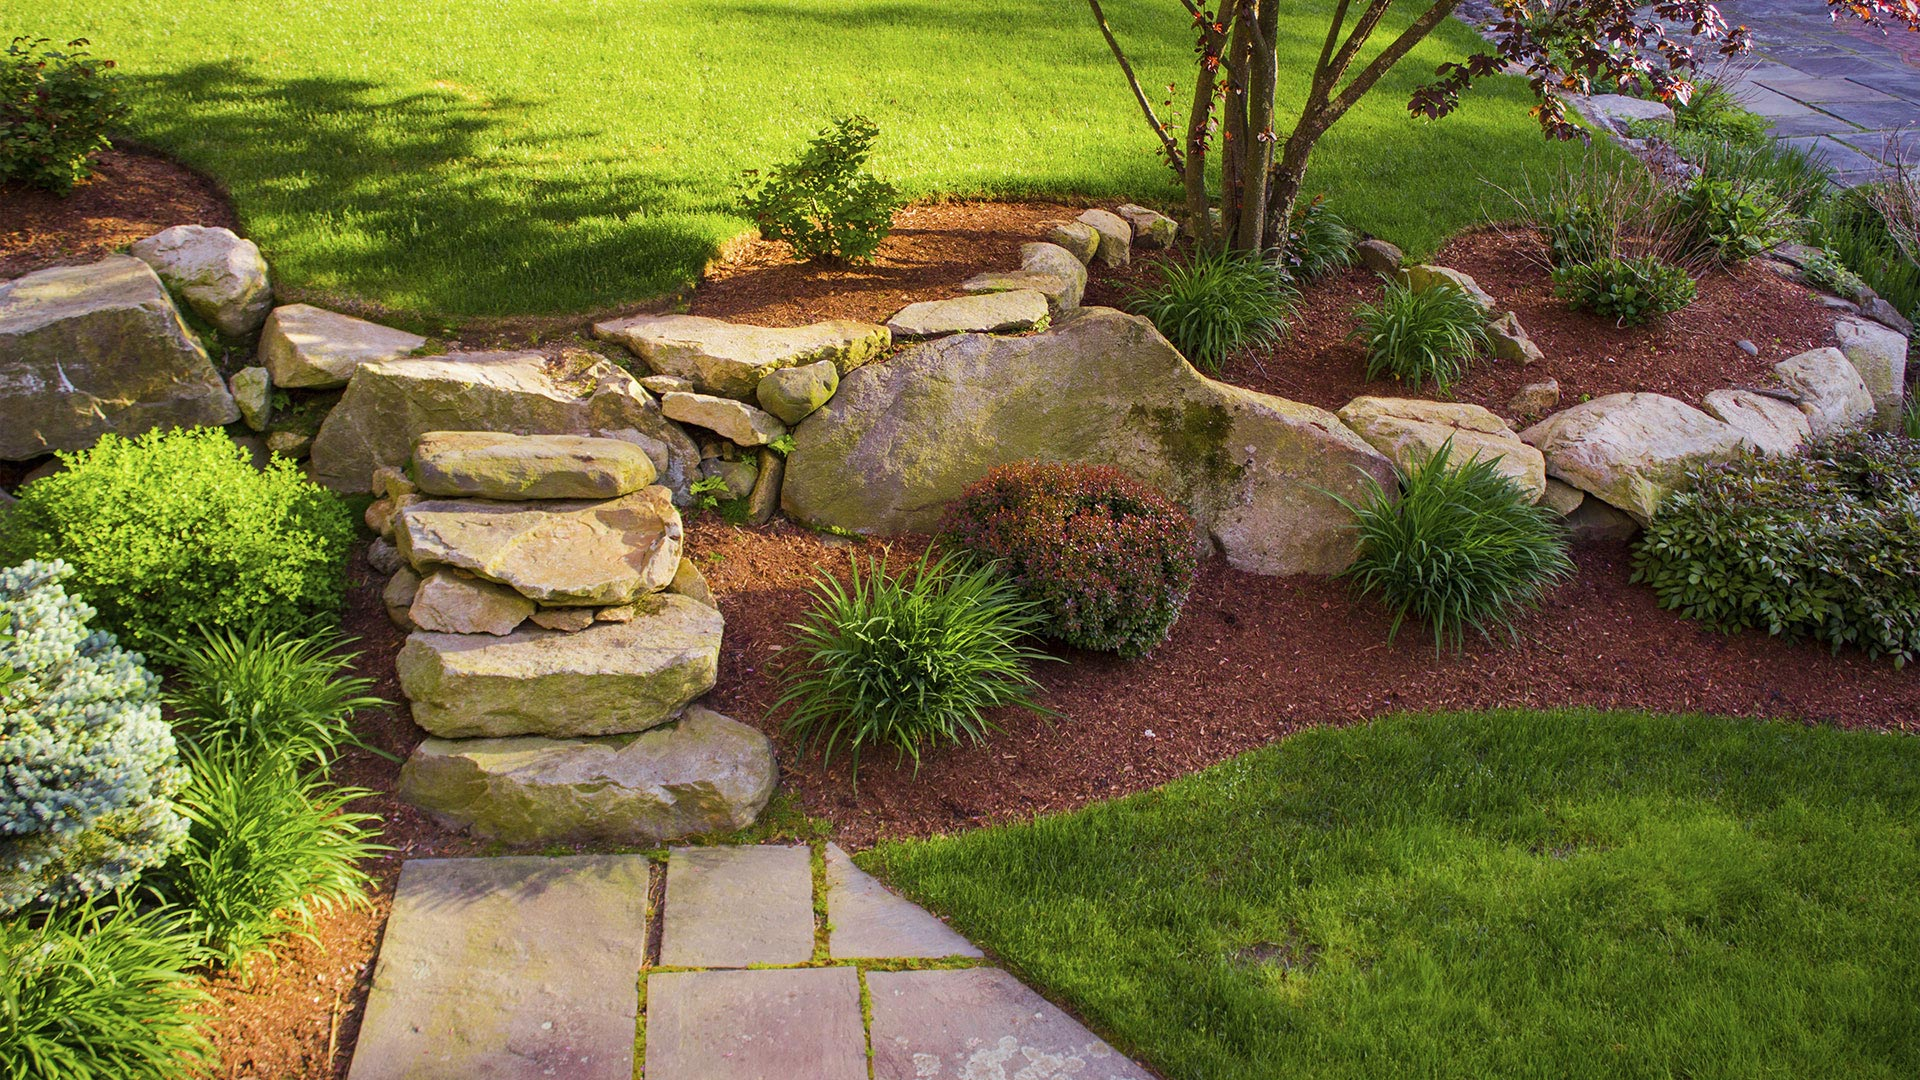 Central Interior Lawn Care Landscaping, Hardscape and Lawn Care slide 3